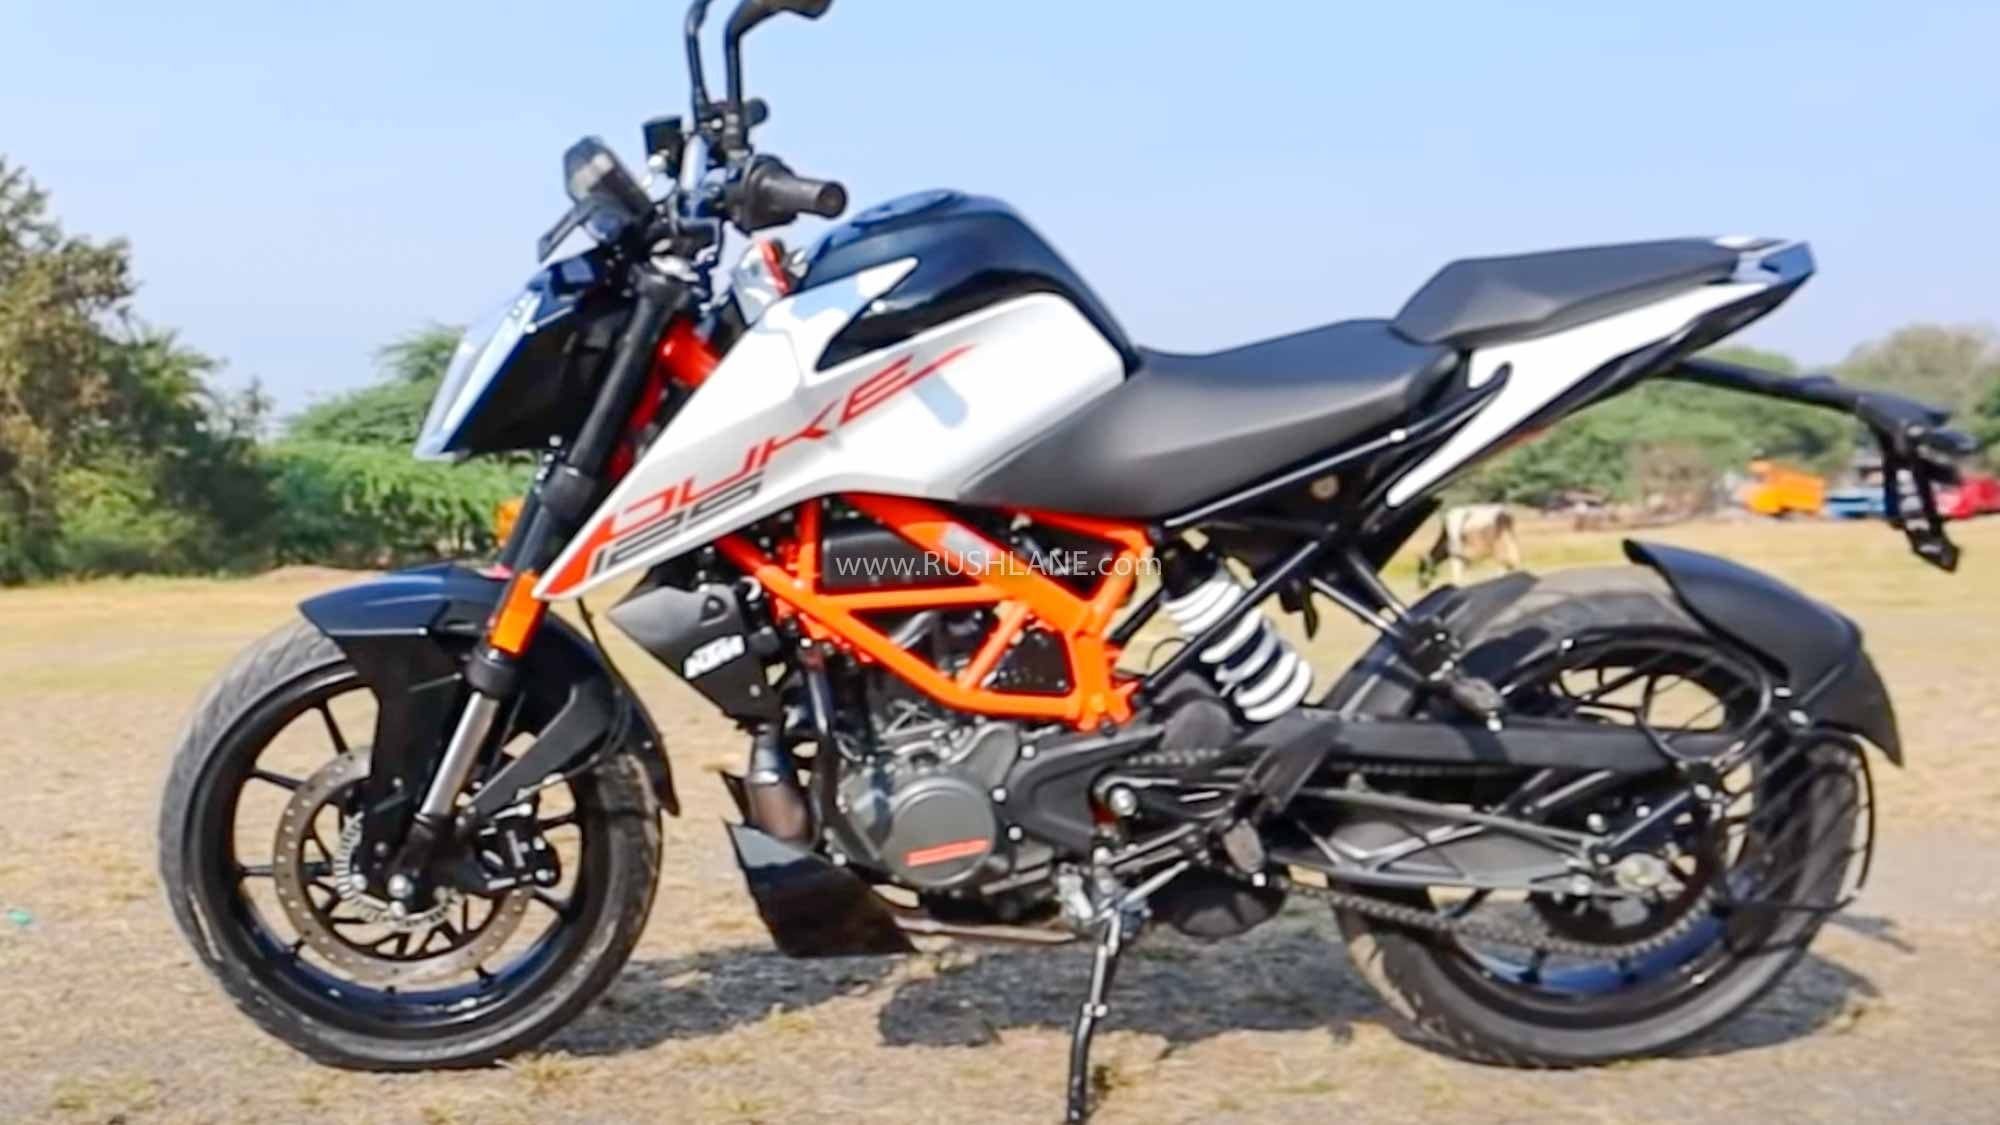 New Ktm Duke 125 Launch Price Rs 1 5 Lakh First Look Walkaround